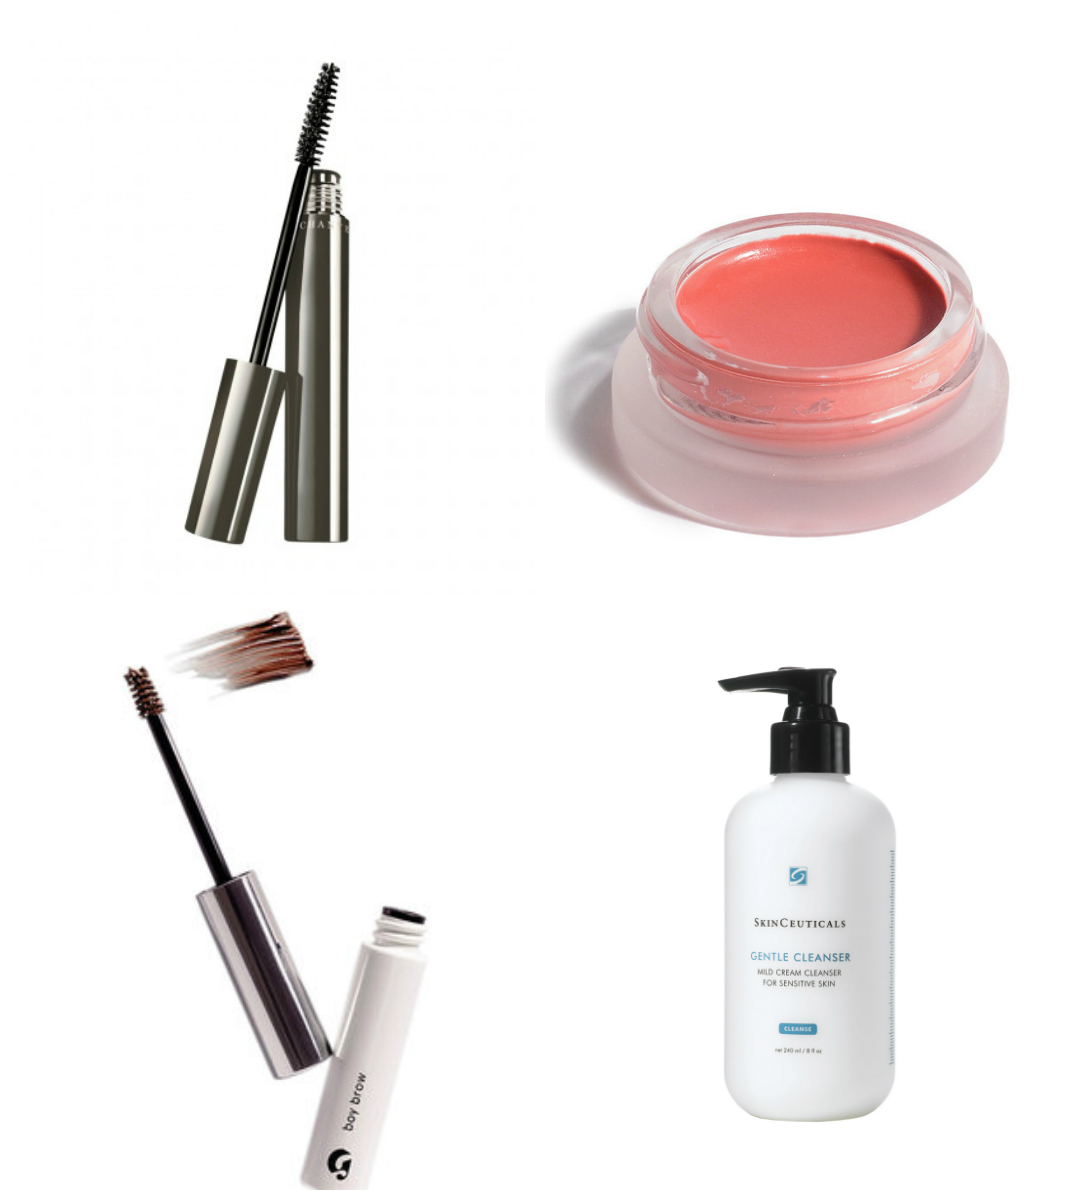 Julia's November Favorites